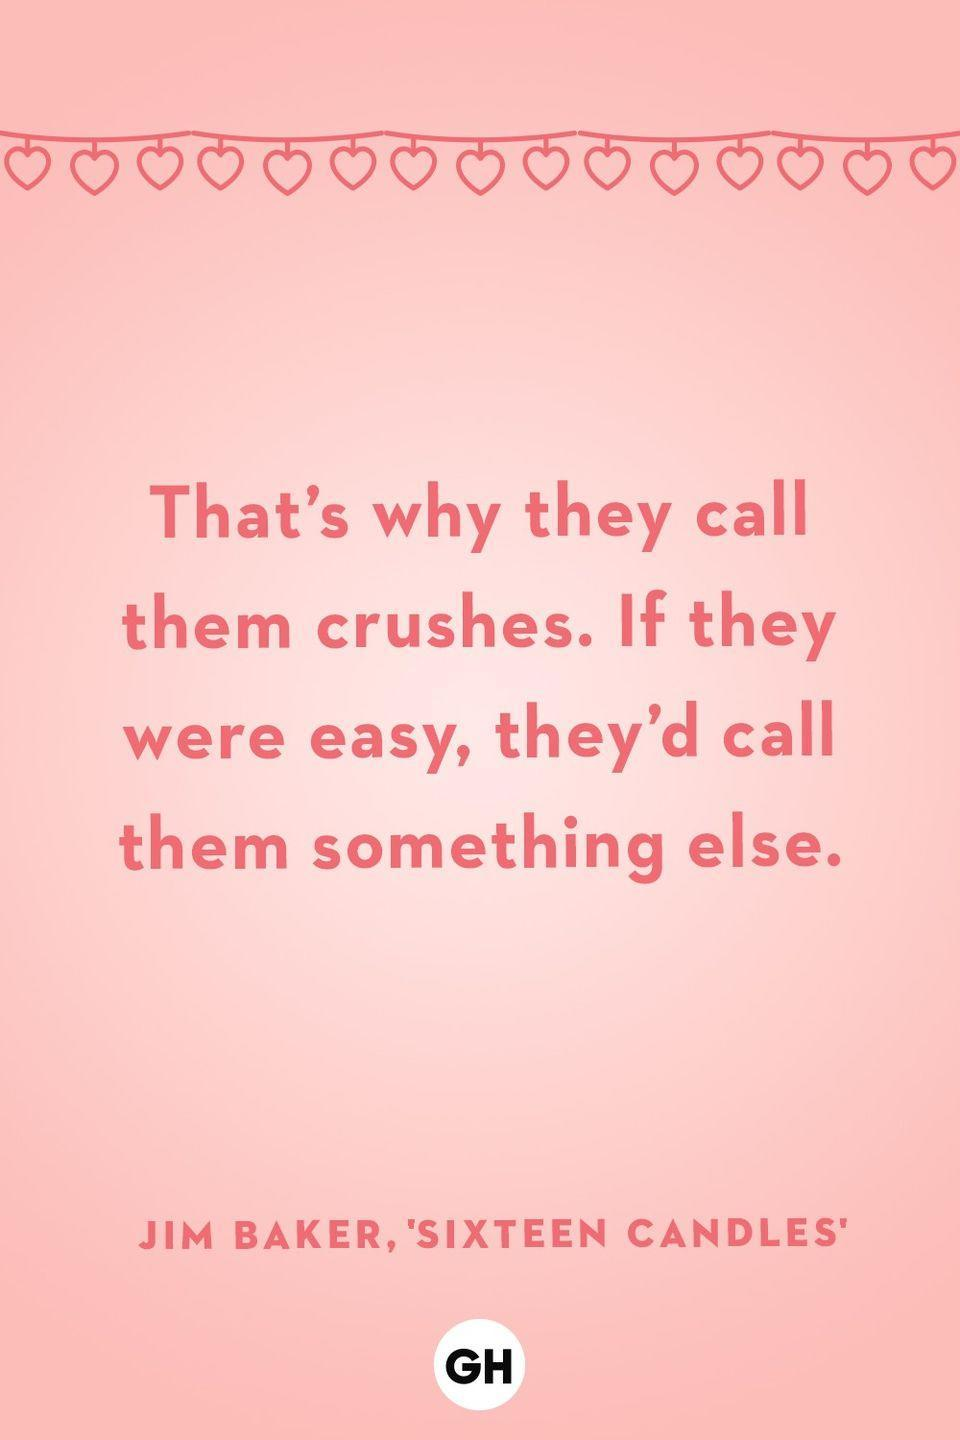 <p>That's why they call them crushes. If they were easy, they'd call them something else.</p>